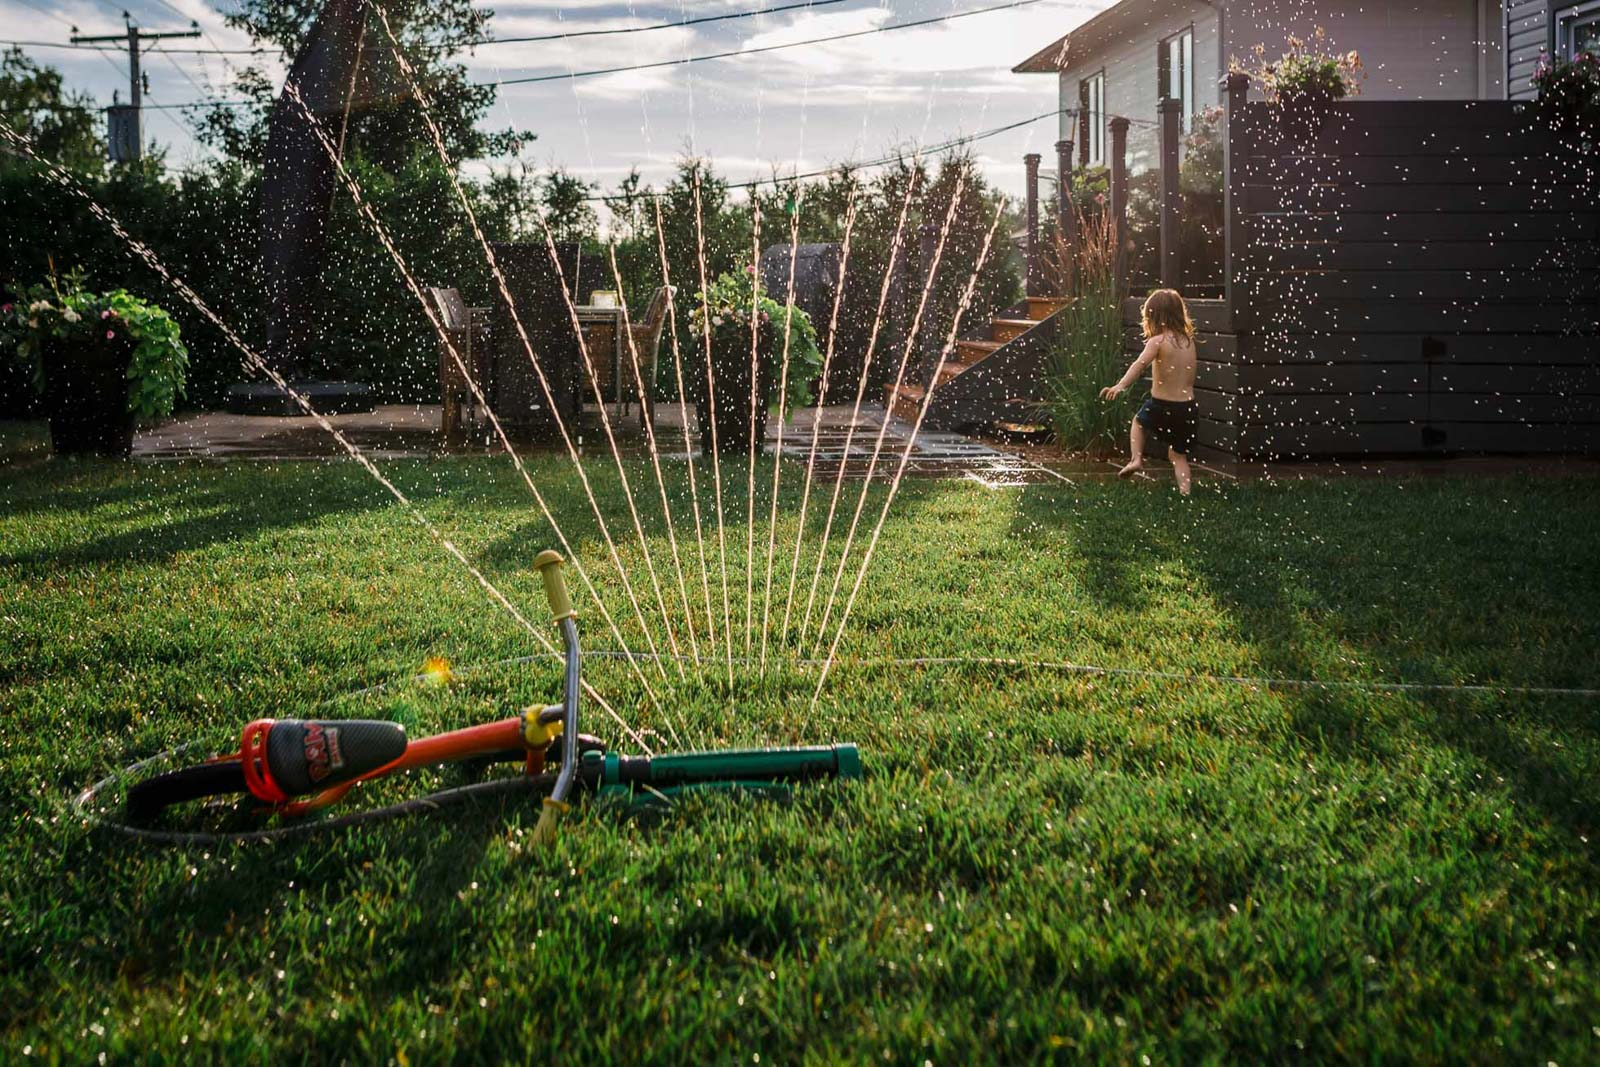 bike ride water hose toddler faceless running out splash golden hour backyard annick simon photographes paradis photographes documentaires quebec